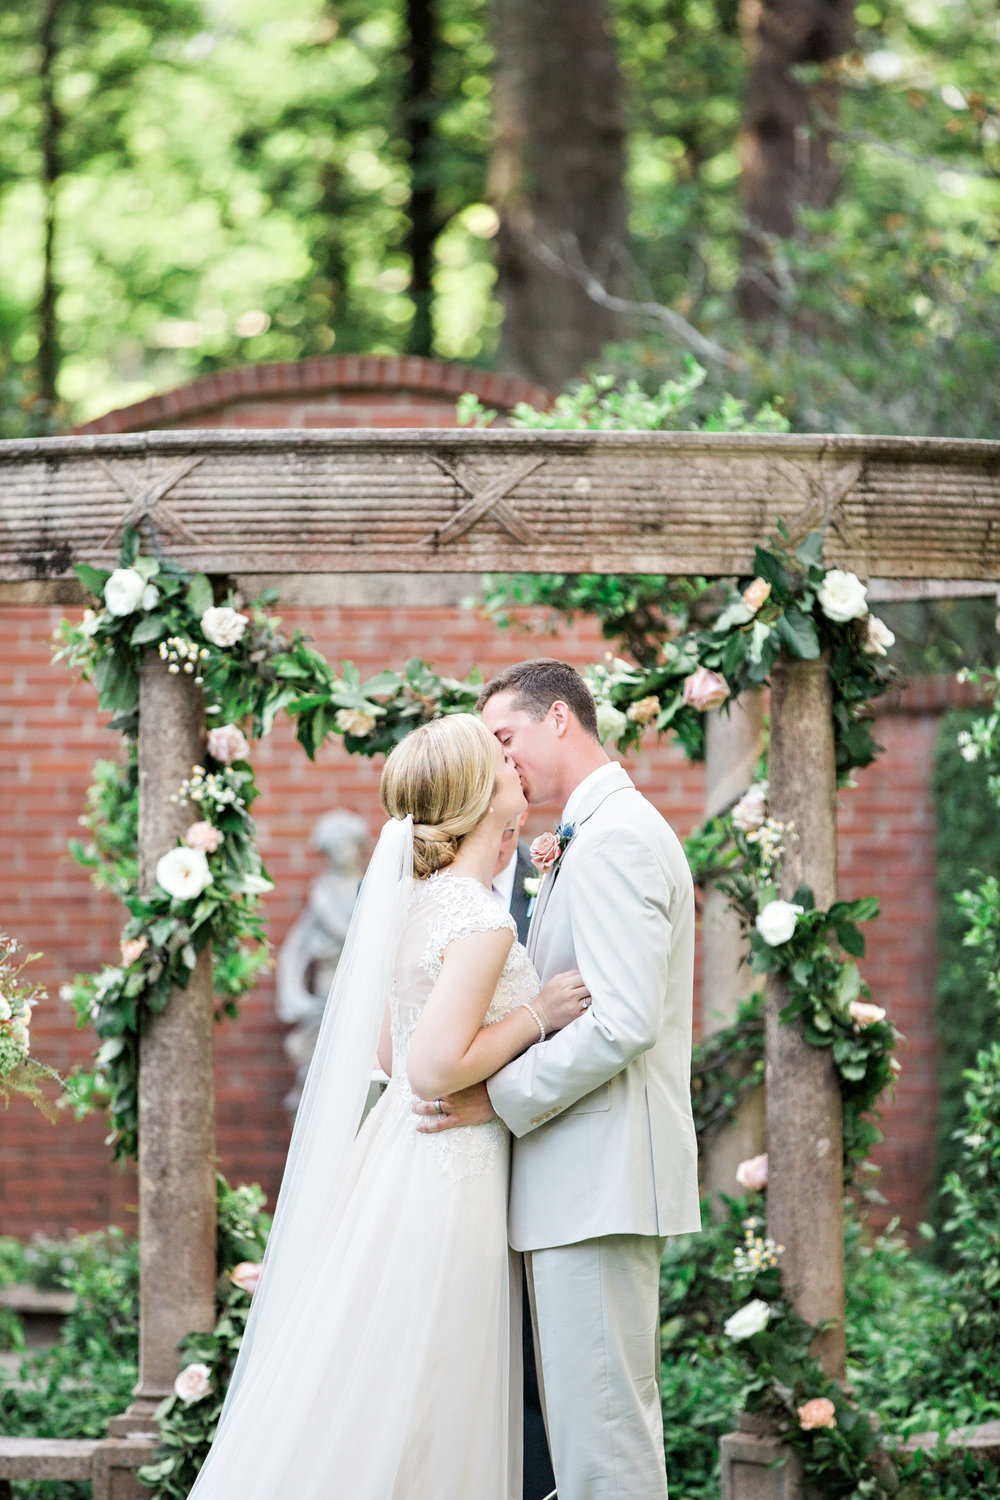 Matty-Drollette-Photography-Alabama-Weddings-Sara and Logan-138.jpg